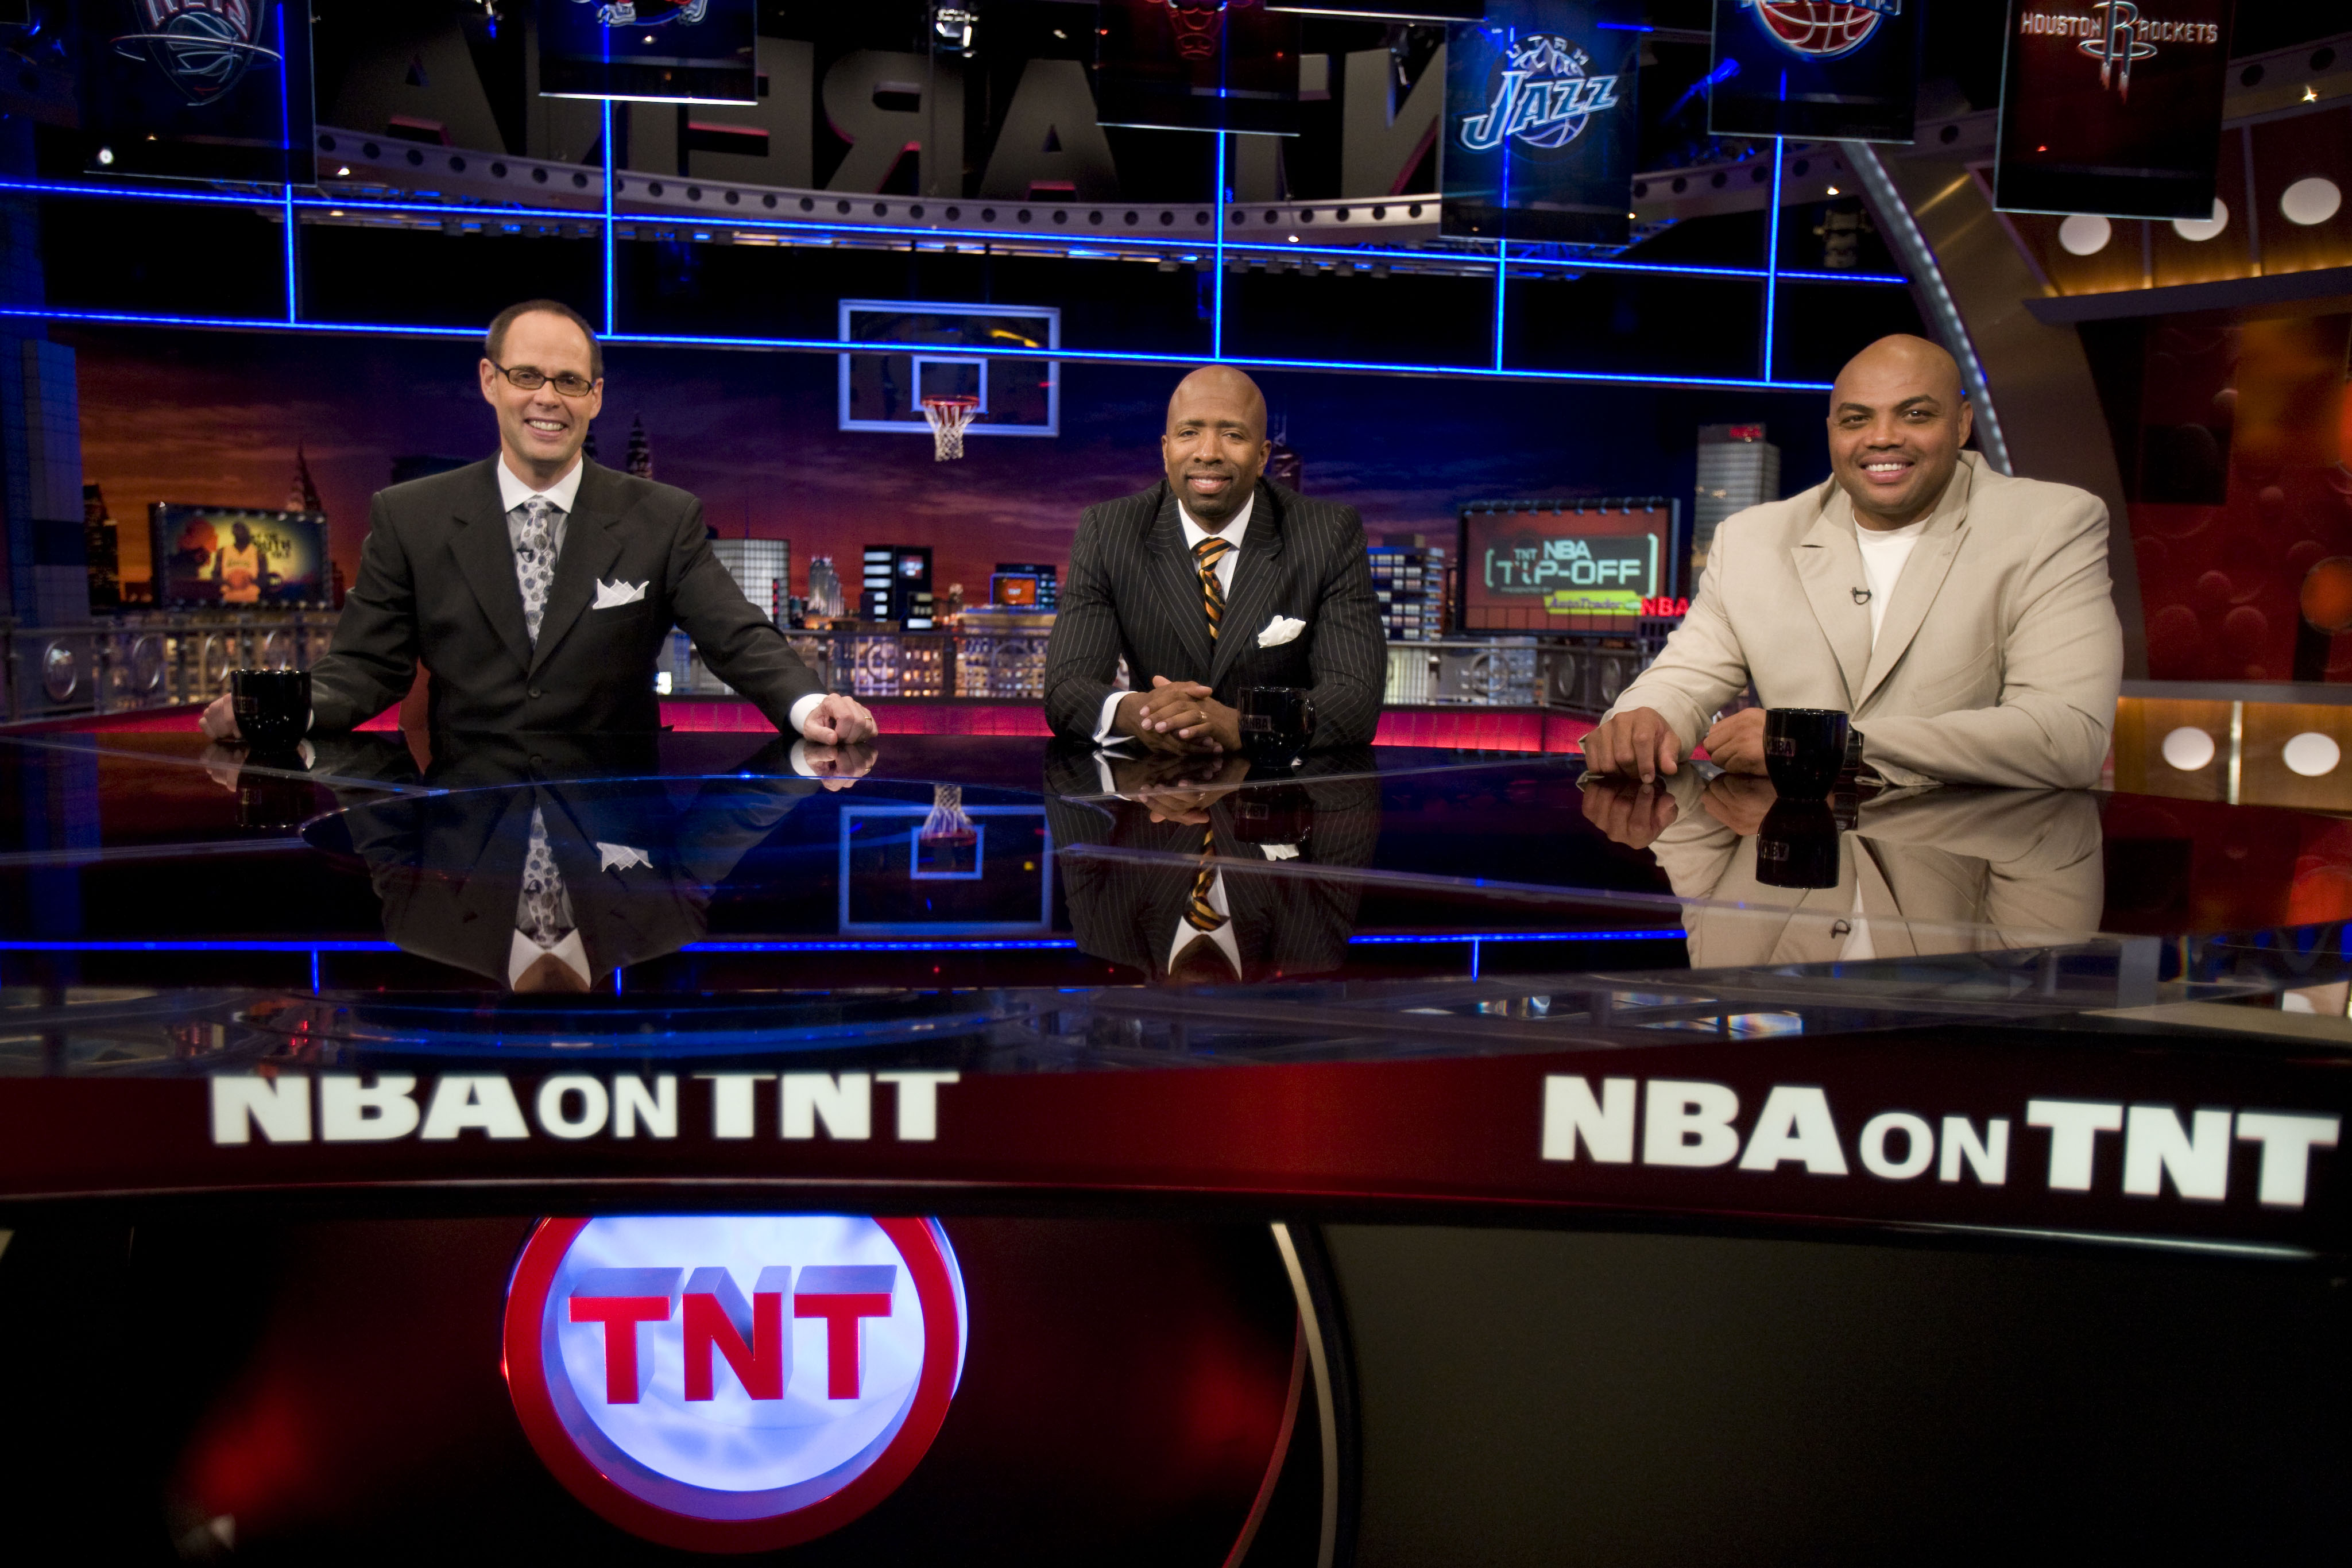 NBA On TNT Notes 1/24/08: All Star Game Starters Announced | The Starting Five